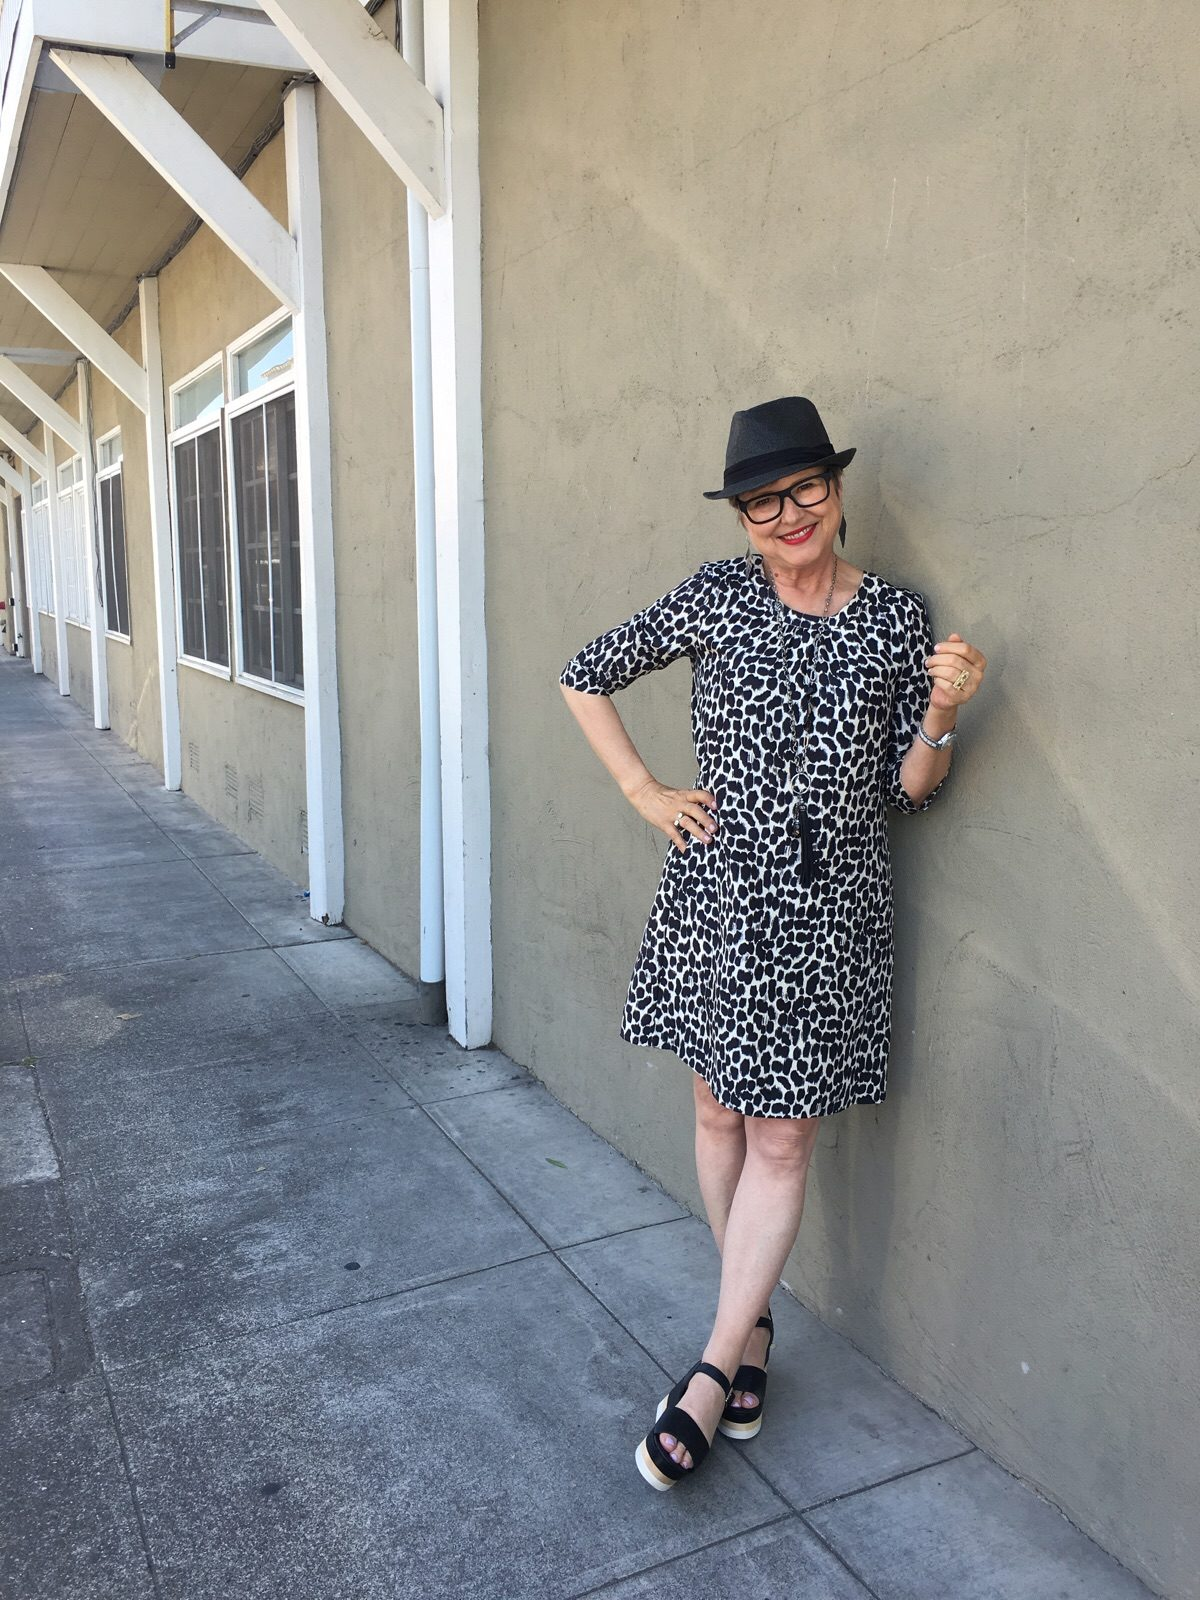 Enjoying wearing a dress on BrendaKinsel.com